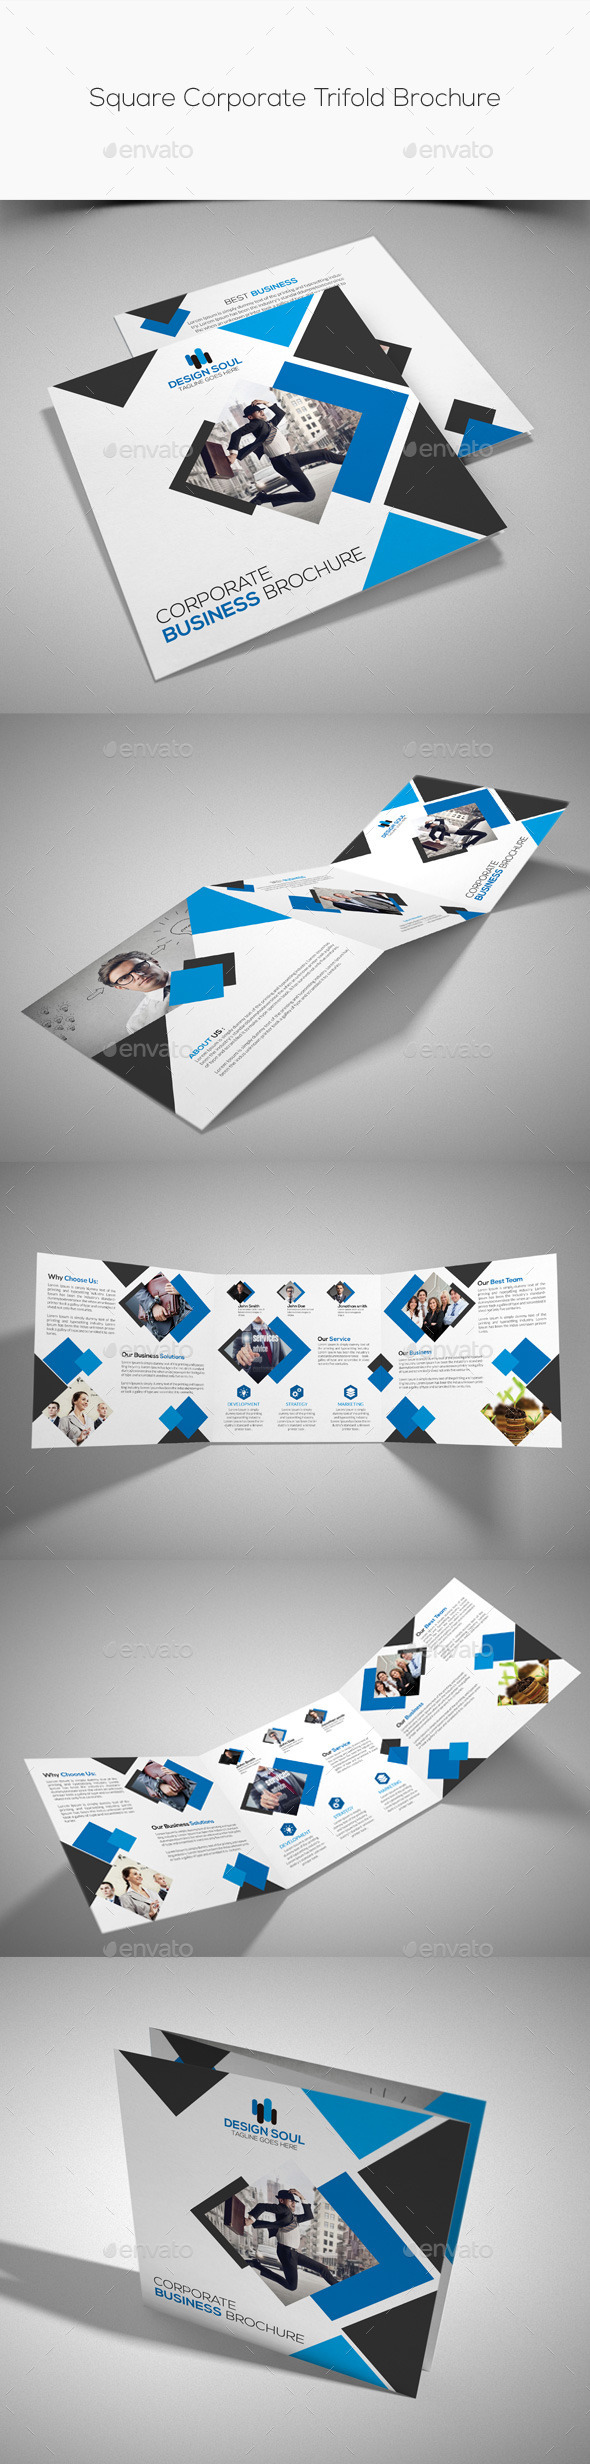 GraphicRiver Square Corporate Trifold Brochure 10813623